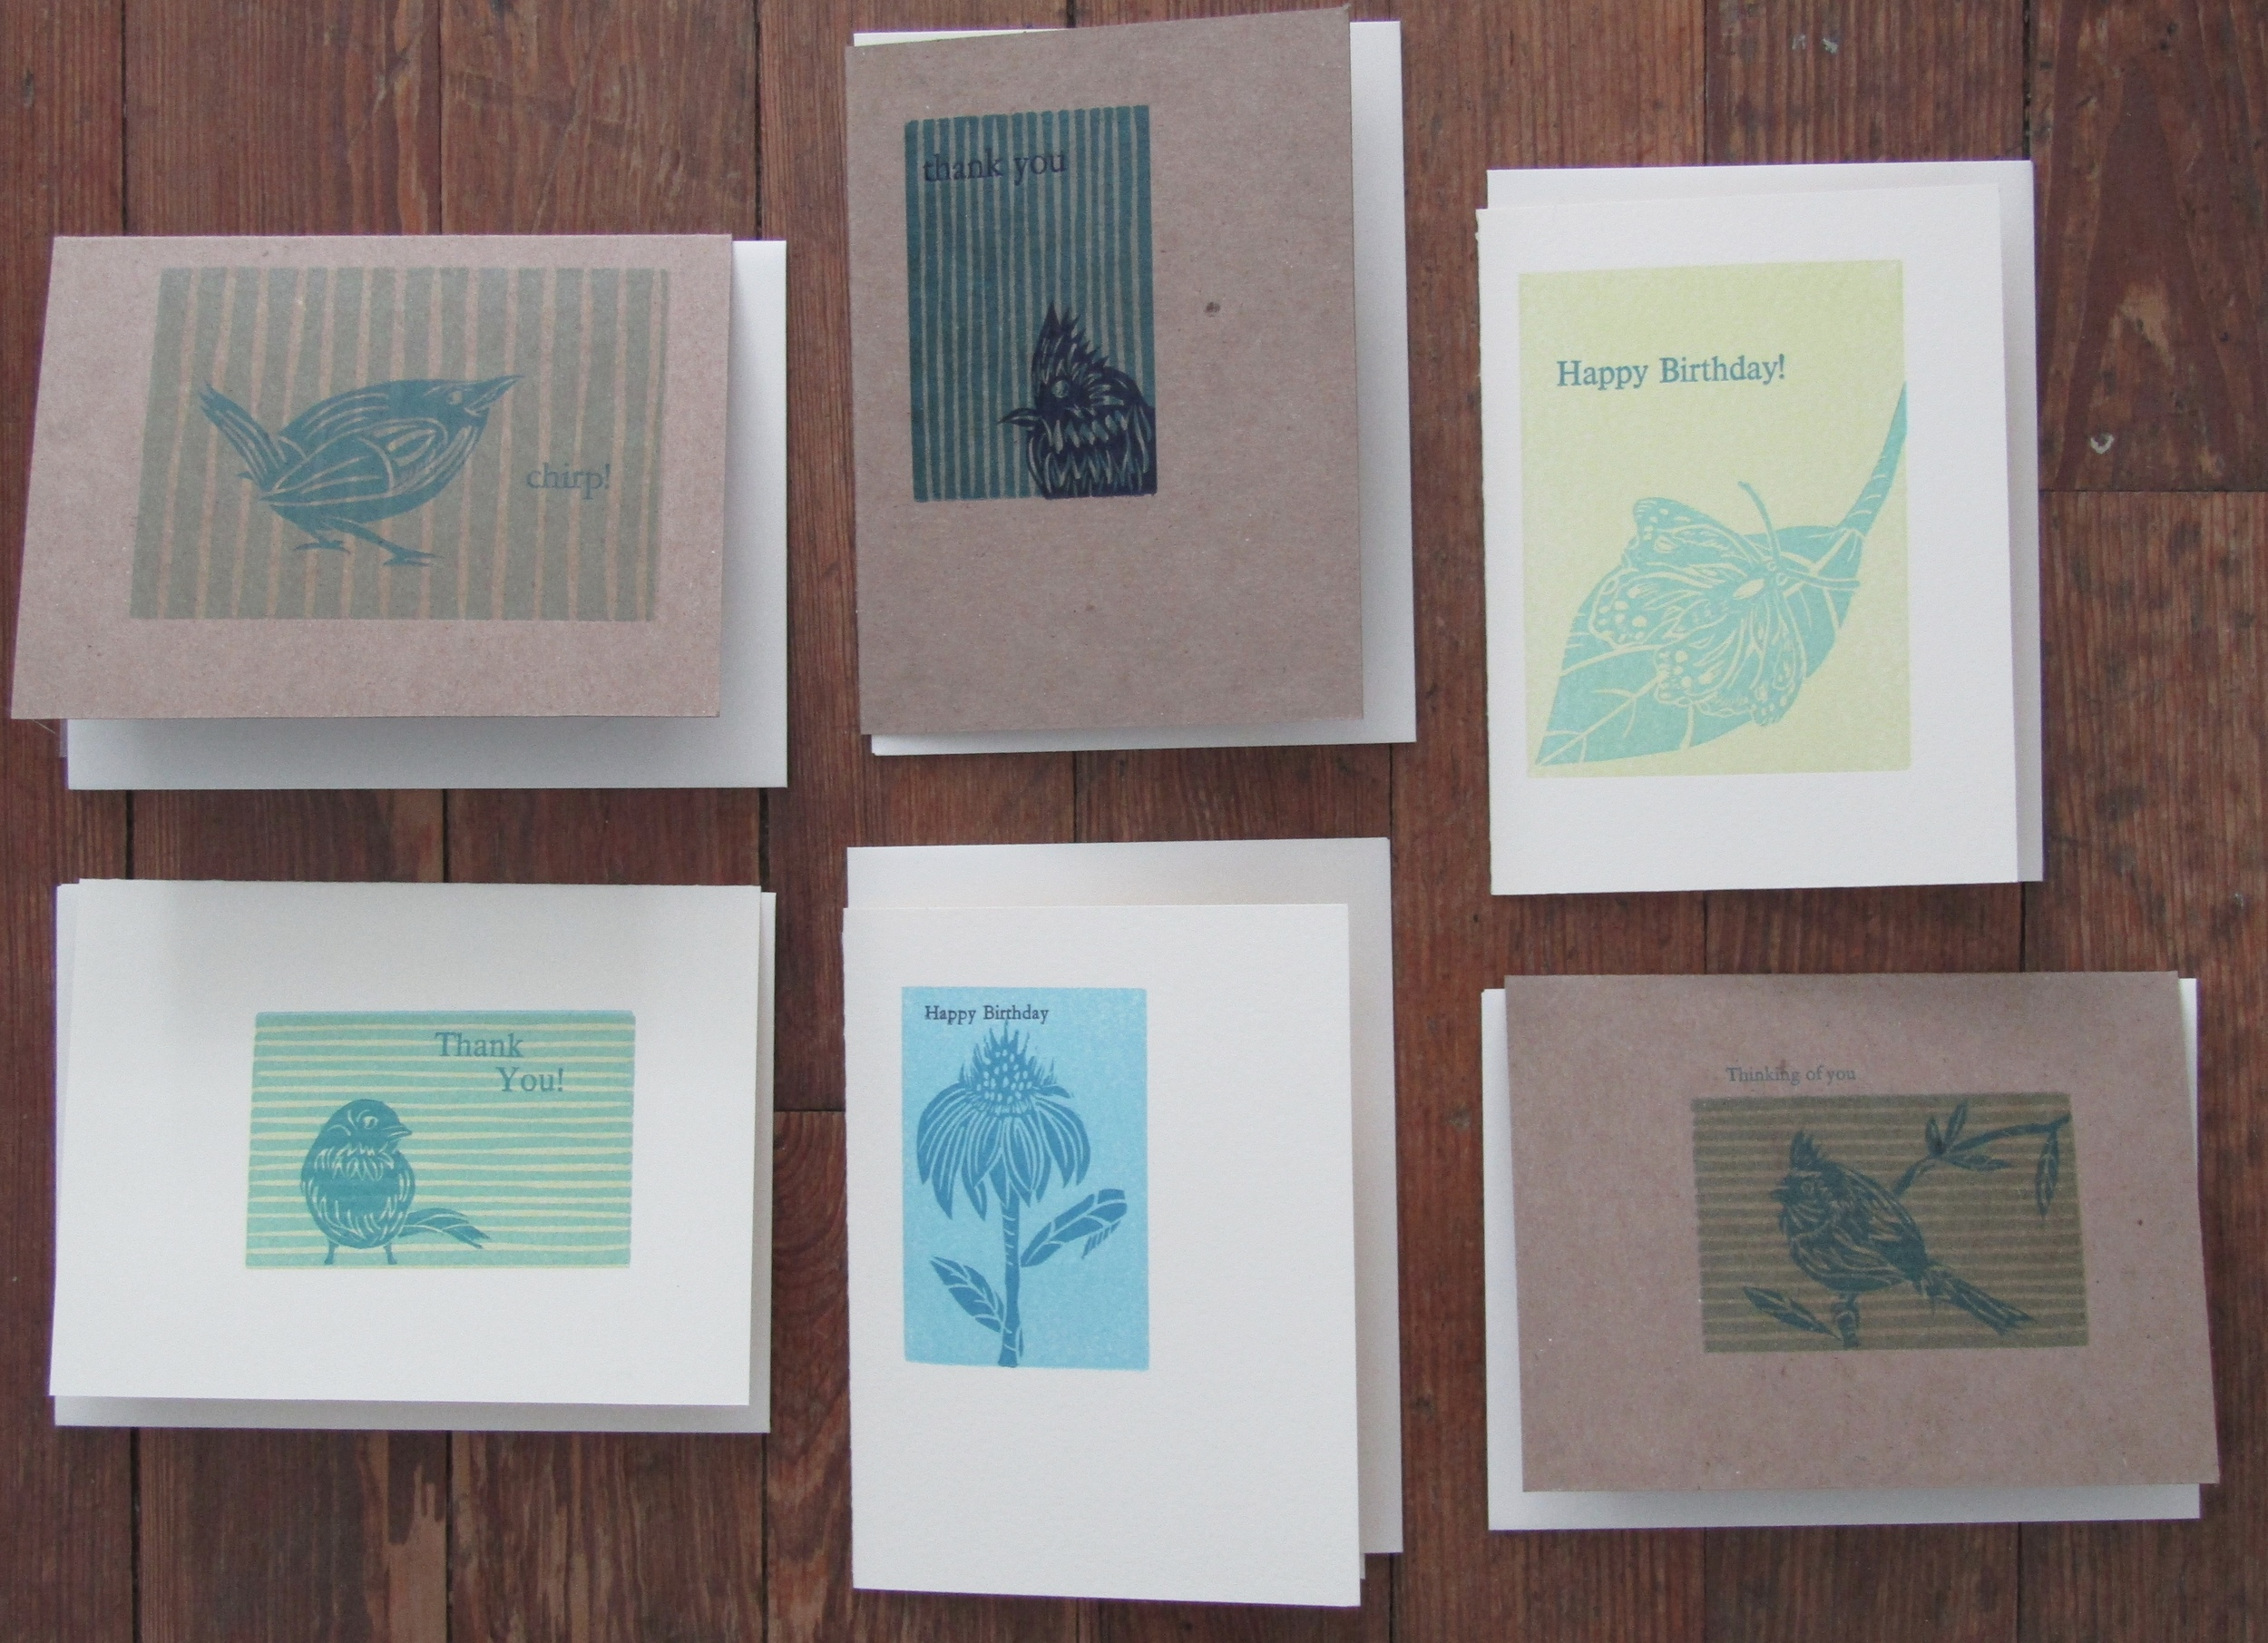 A variety of greeting cards!